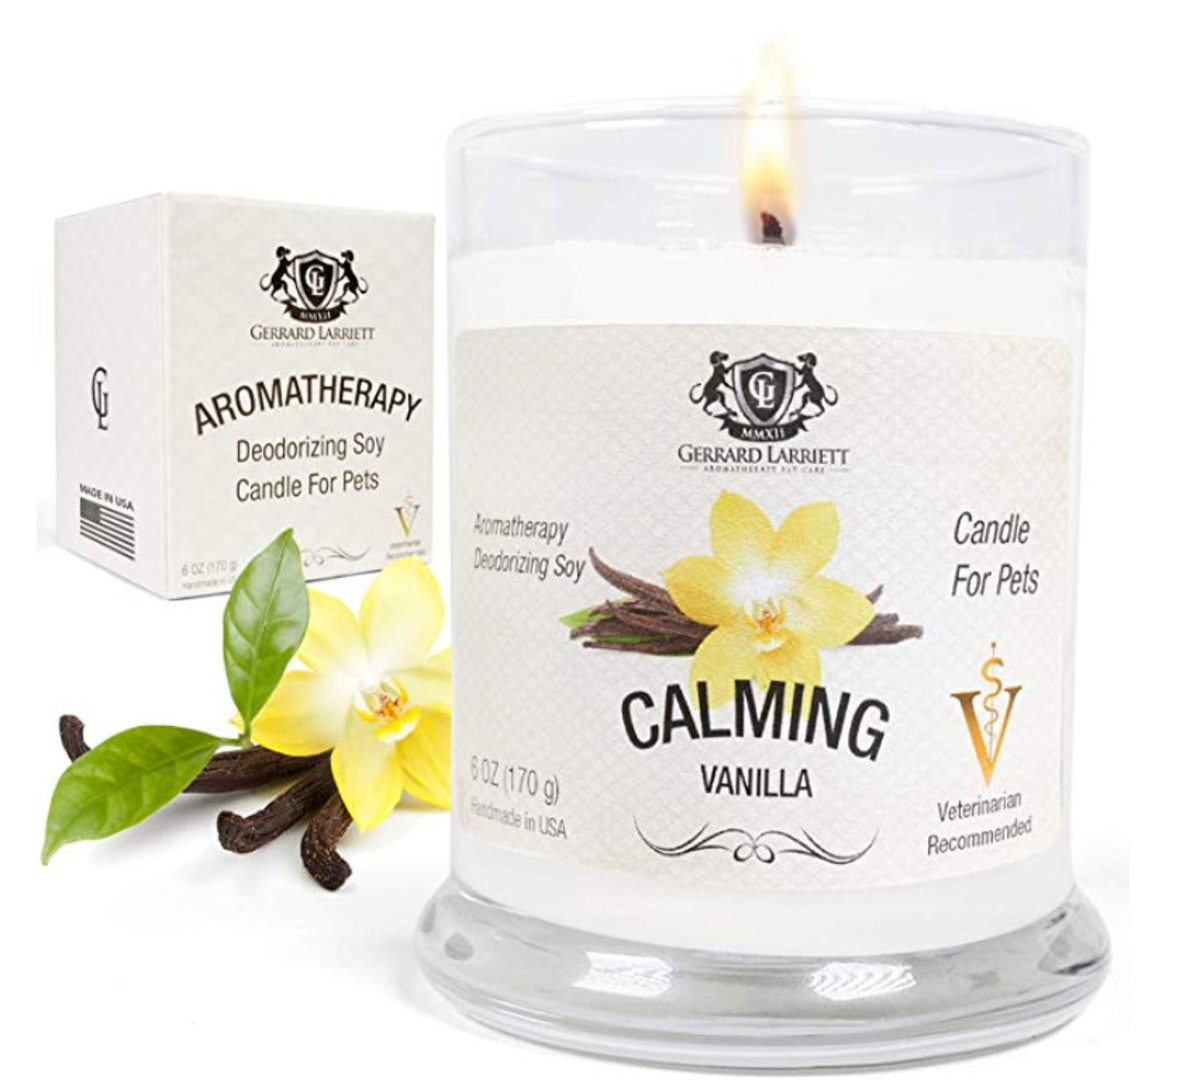 Aromatherapy Deodorizing Soy Candle for Pet